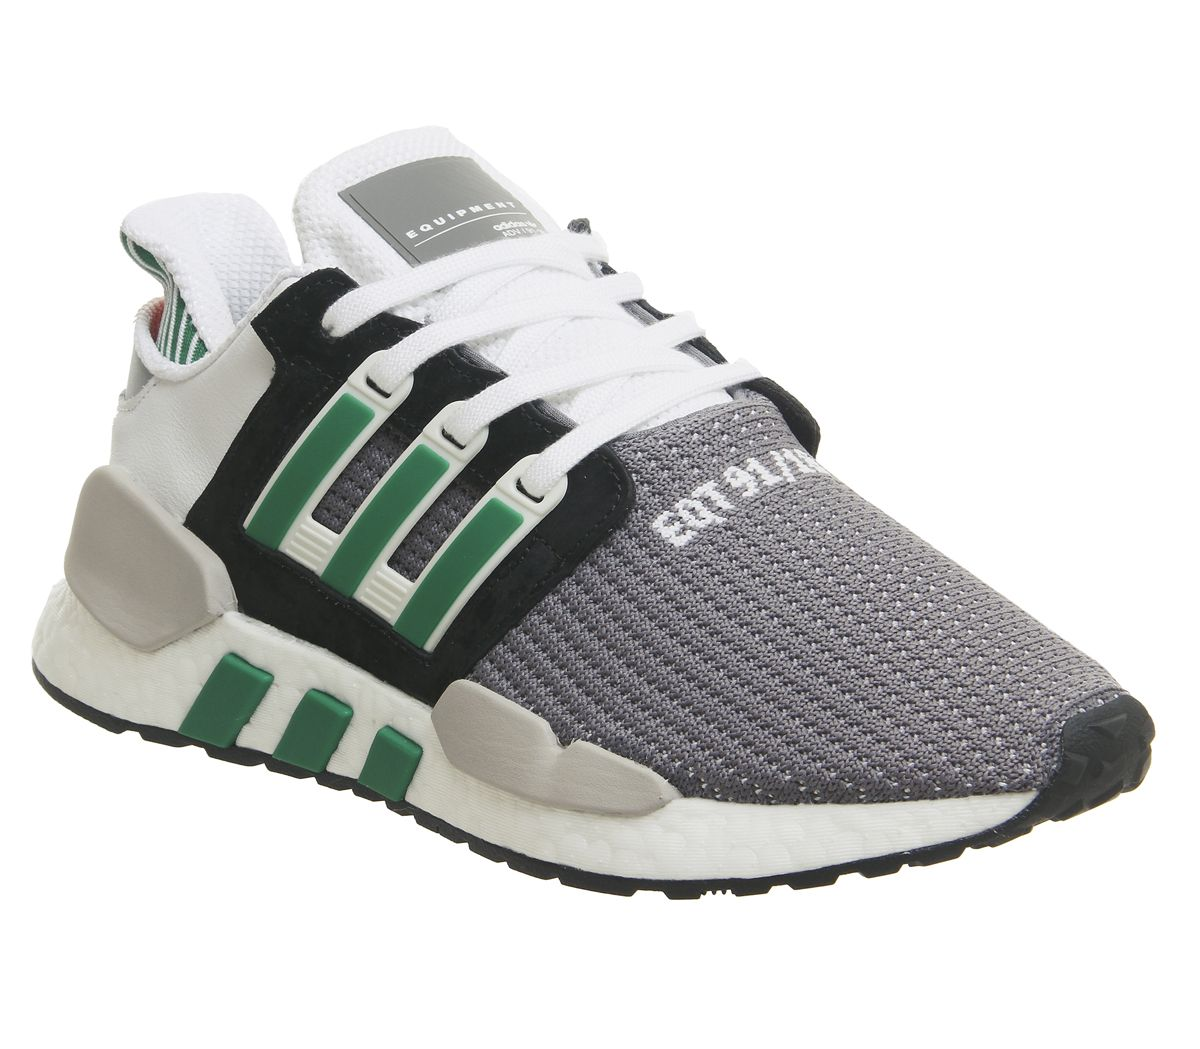 factory price 8b760 d7831 Eqt Support 91/18 Trainers